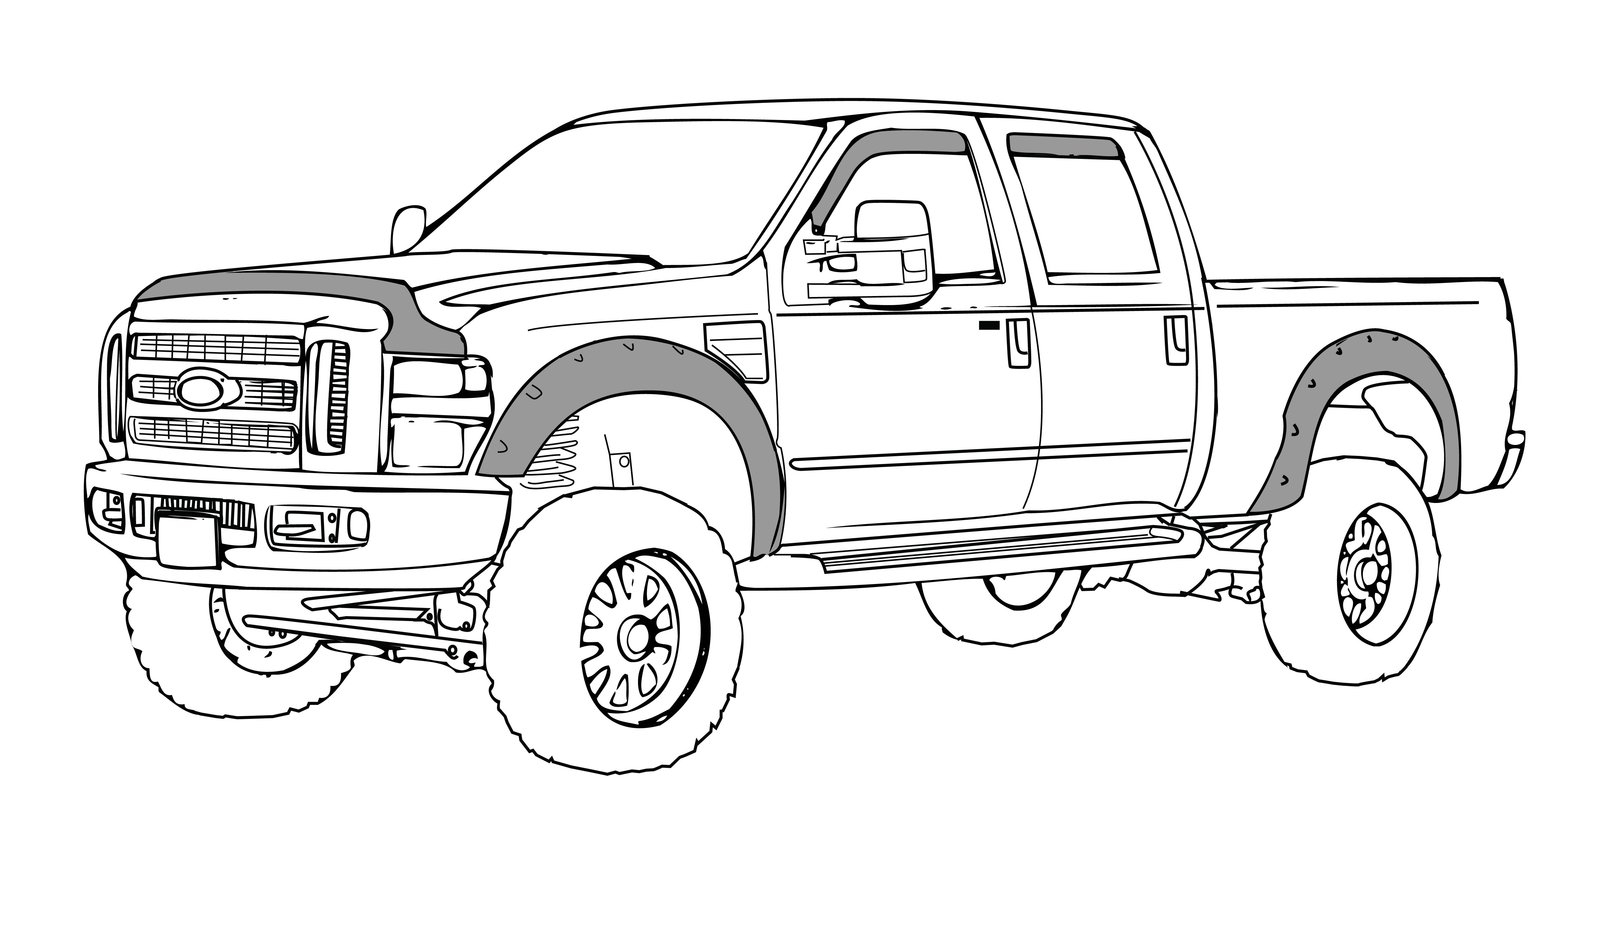 Coloring Pages Trucks And Cars Free Coloring Pages Download | Xsibe ...